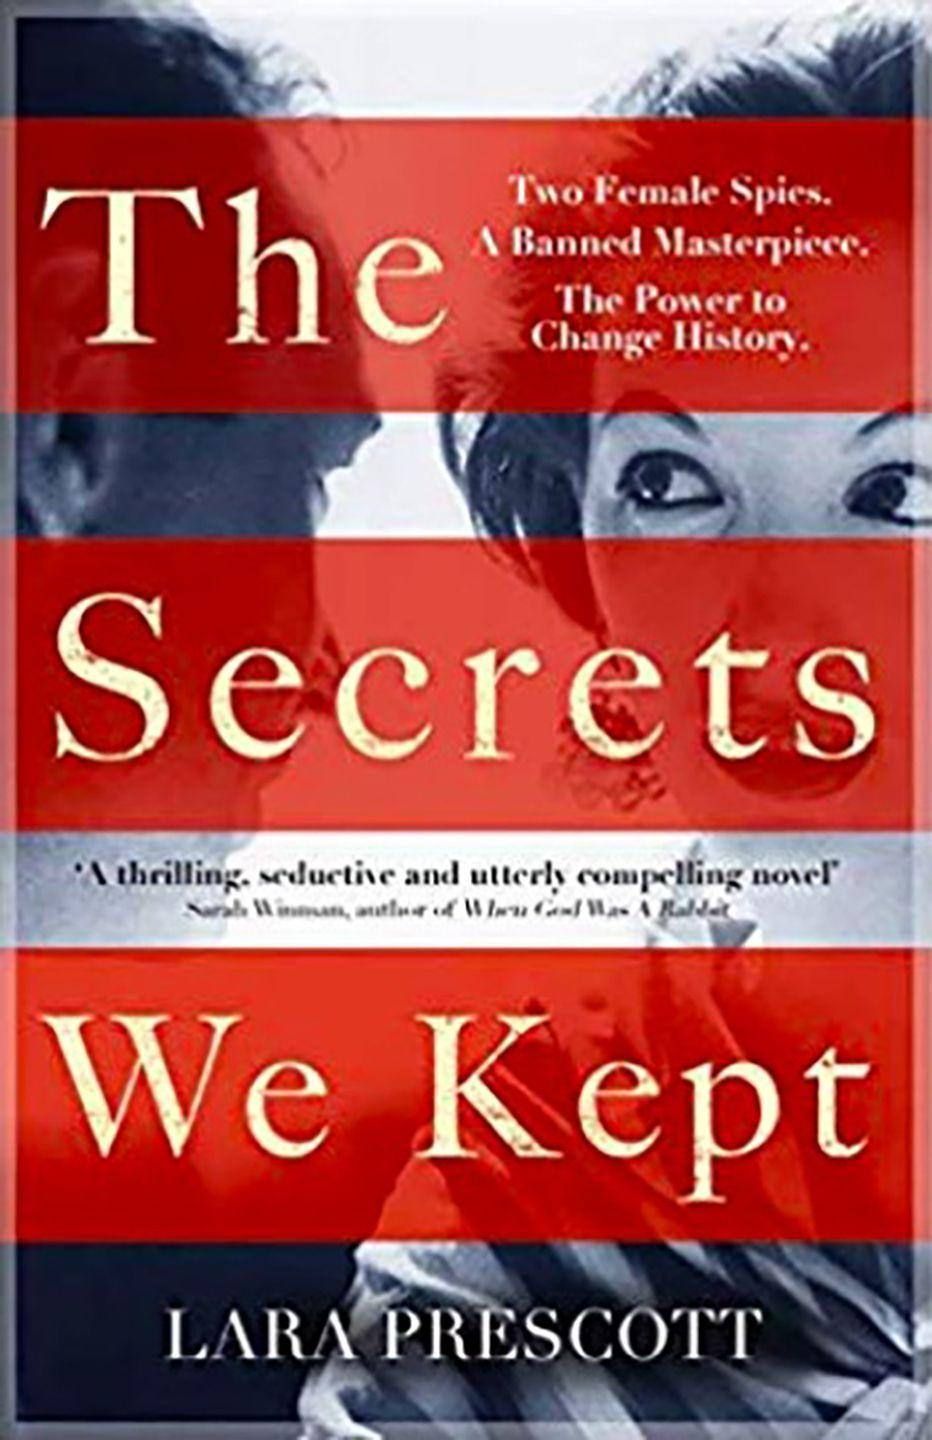 """<p><a class=""""link rapid-noclick-resp"""" href=""""https://www.amazon.co.uk/Secrets-We-Kept-Lara-Prescott/dp/1786331667/ref=sr_1_1?keywords=The+Secrets+We+Kept+by+Lara+Prescott&qid=1567161766&s=gateway&sr=8-1&tag=hearstuk-yahoo-21&ascsubtag=%5Bartid%7C1919.g.15922606%5Bsrc%7Cyahoo-uk"""" rel=""""nofollow noopener"""" target=""""_blank"""" data-ylk=""""slk:SHOP NOW"""">SHOP NOW</a> £11.43, Amazon</p><p>In 1956, a successful Russian author's book, Doctor Zhivago, is banned by the Soviets who are afraid of its subversive power. It goes viral across the rest of the world, with the CIA planning to use the book to tip the Cold War in its favour. They don't employ usual spies though, but rather two typists - Sally and Irina, whose mission is to smuggle Doctor Zhivago back into Russia by any means necessary.</p>"""